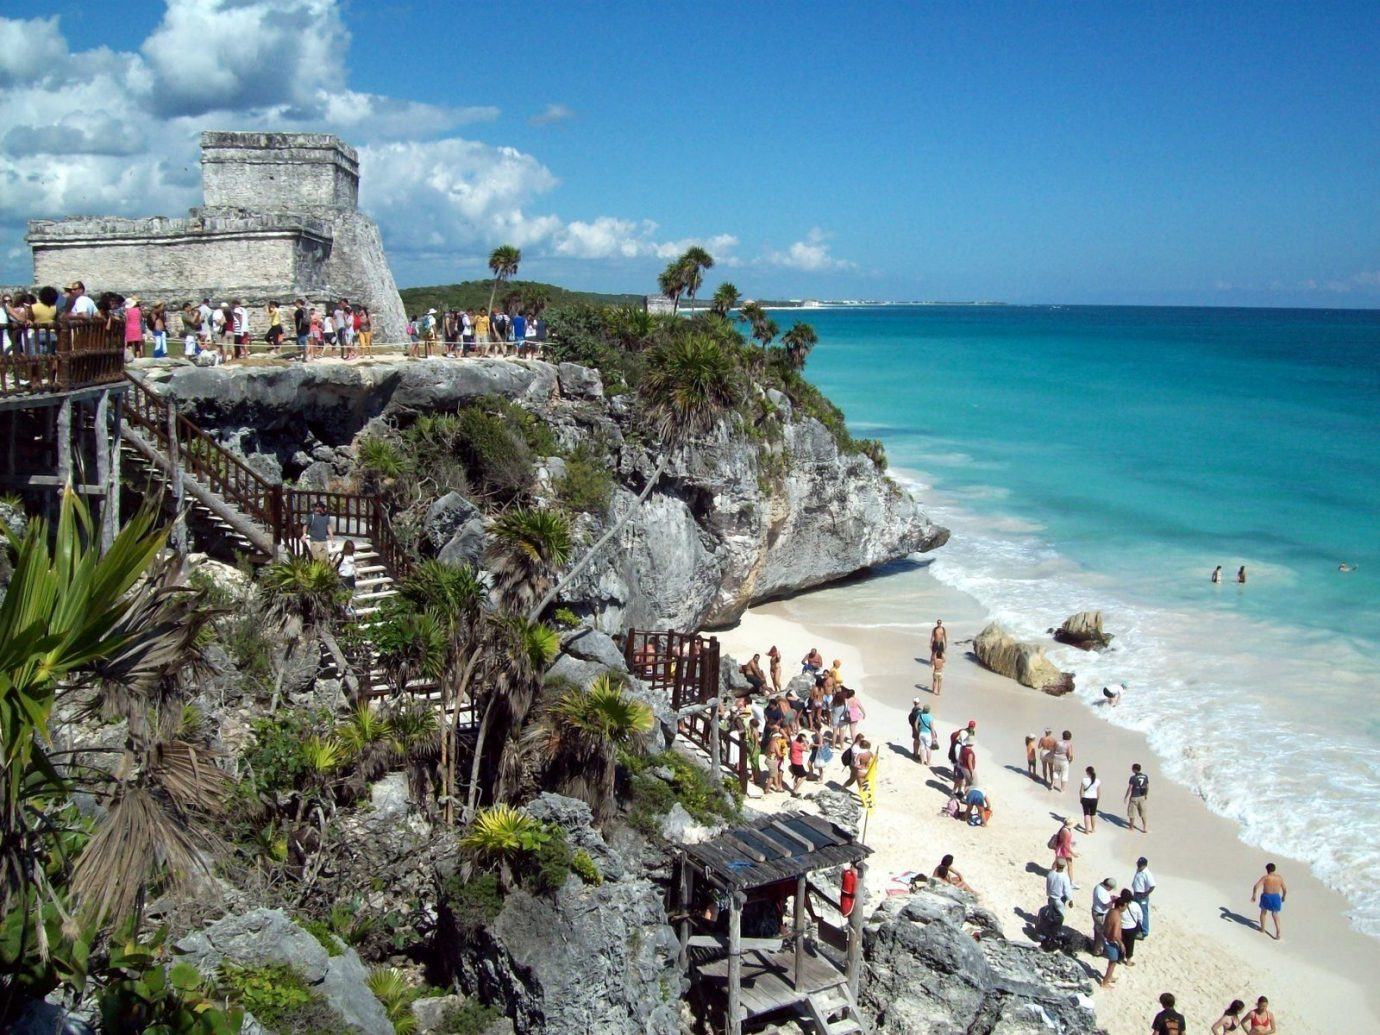 Mexico Trip Ideas Weekend Getaways outdoor sky water Nature Coast Sea people vacation Beach tourism Ocean bay cape terrain cliff caribbean Resort cove travel shore day